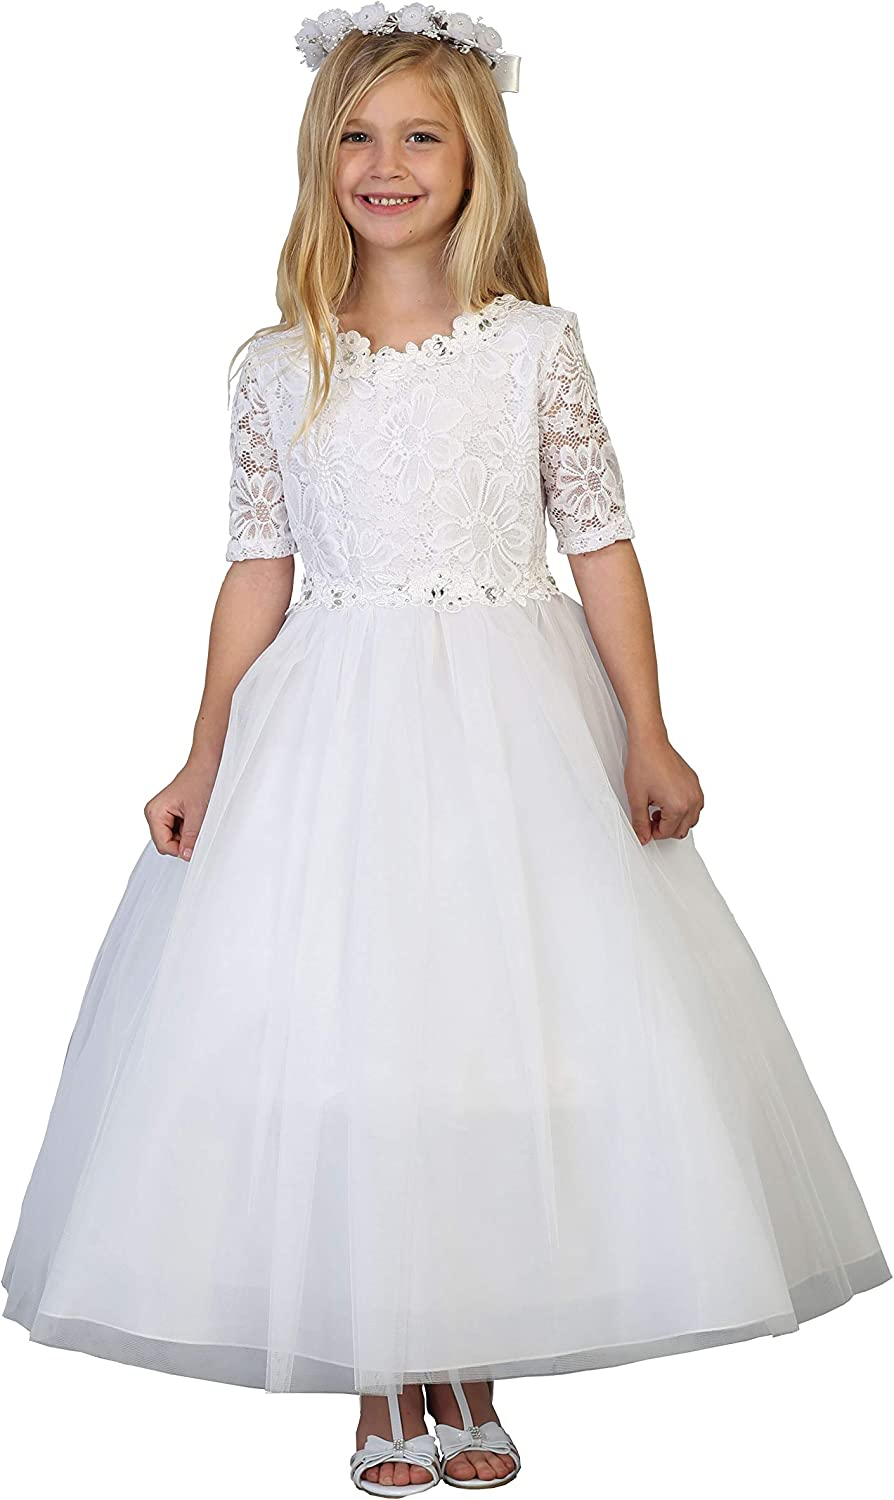 Girls' White First Communion Lace Tulle Half Sleeves Flower Girl Pageant Dress USA 2-24